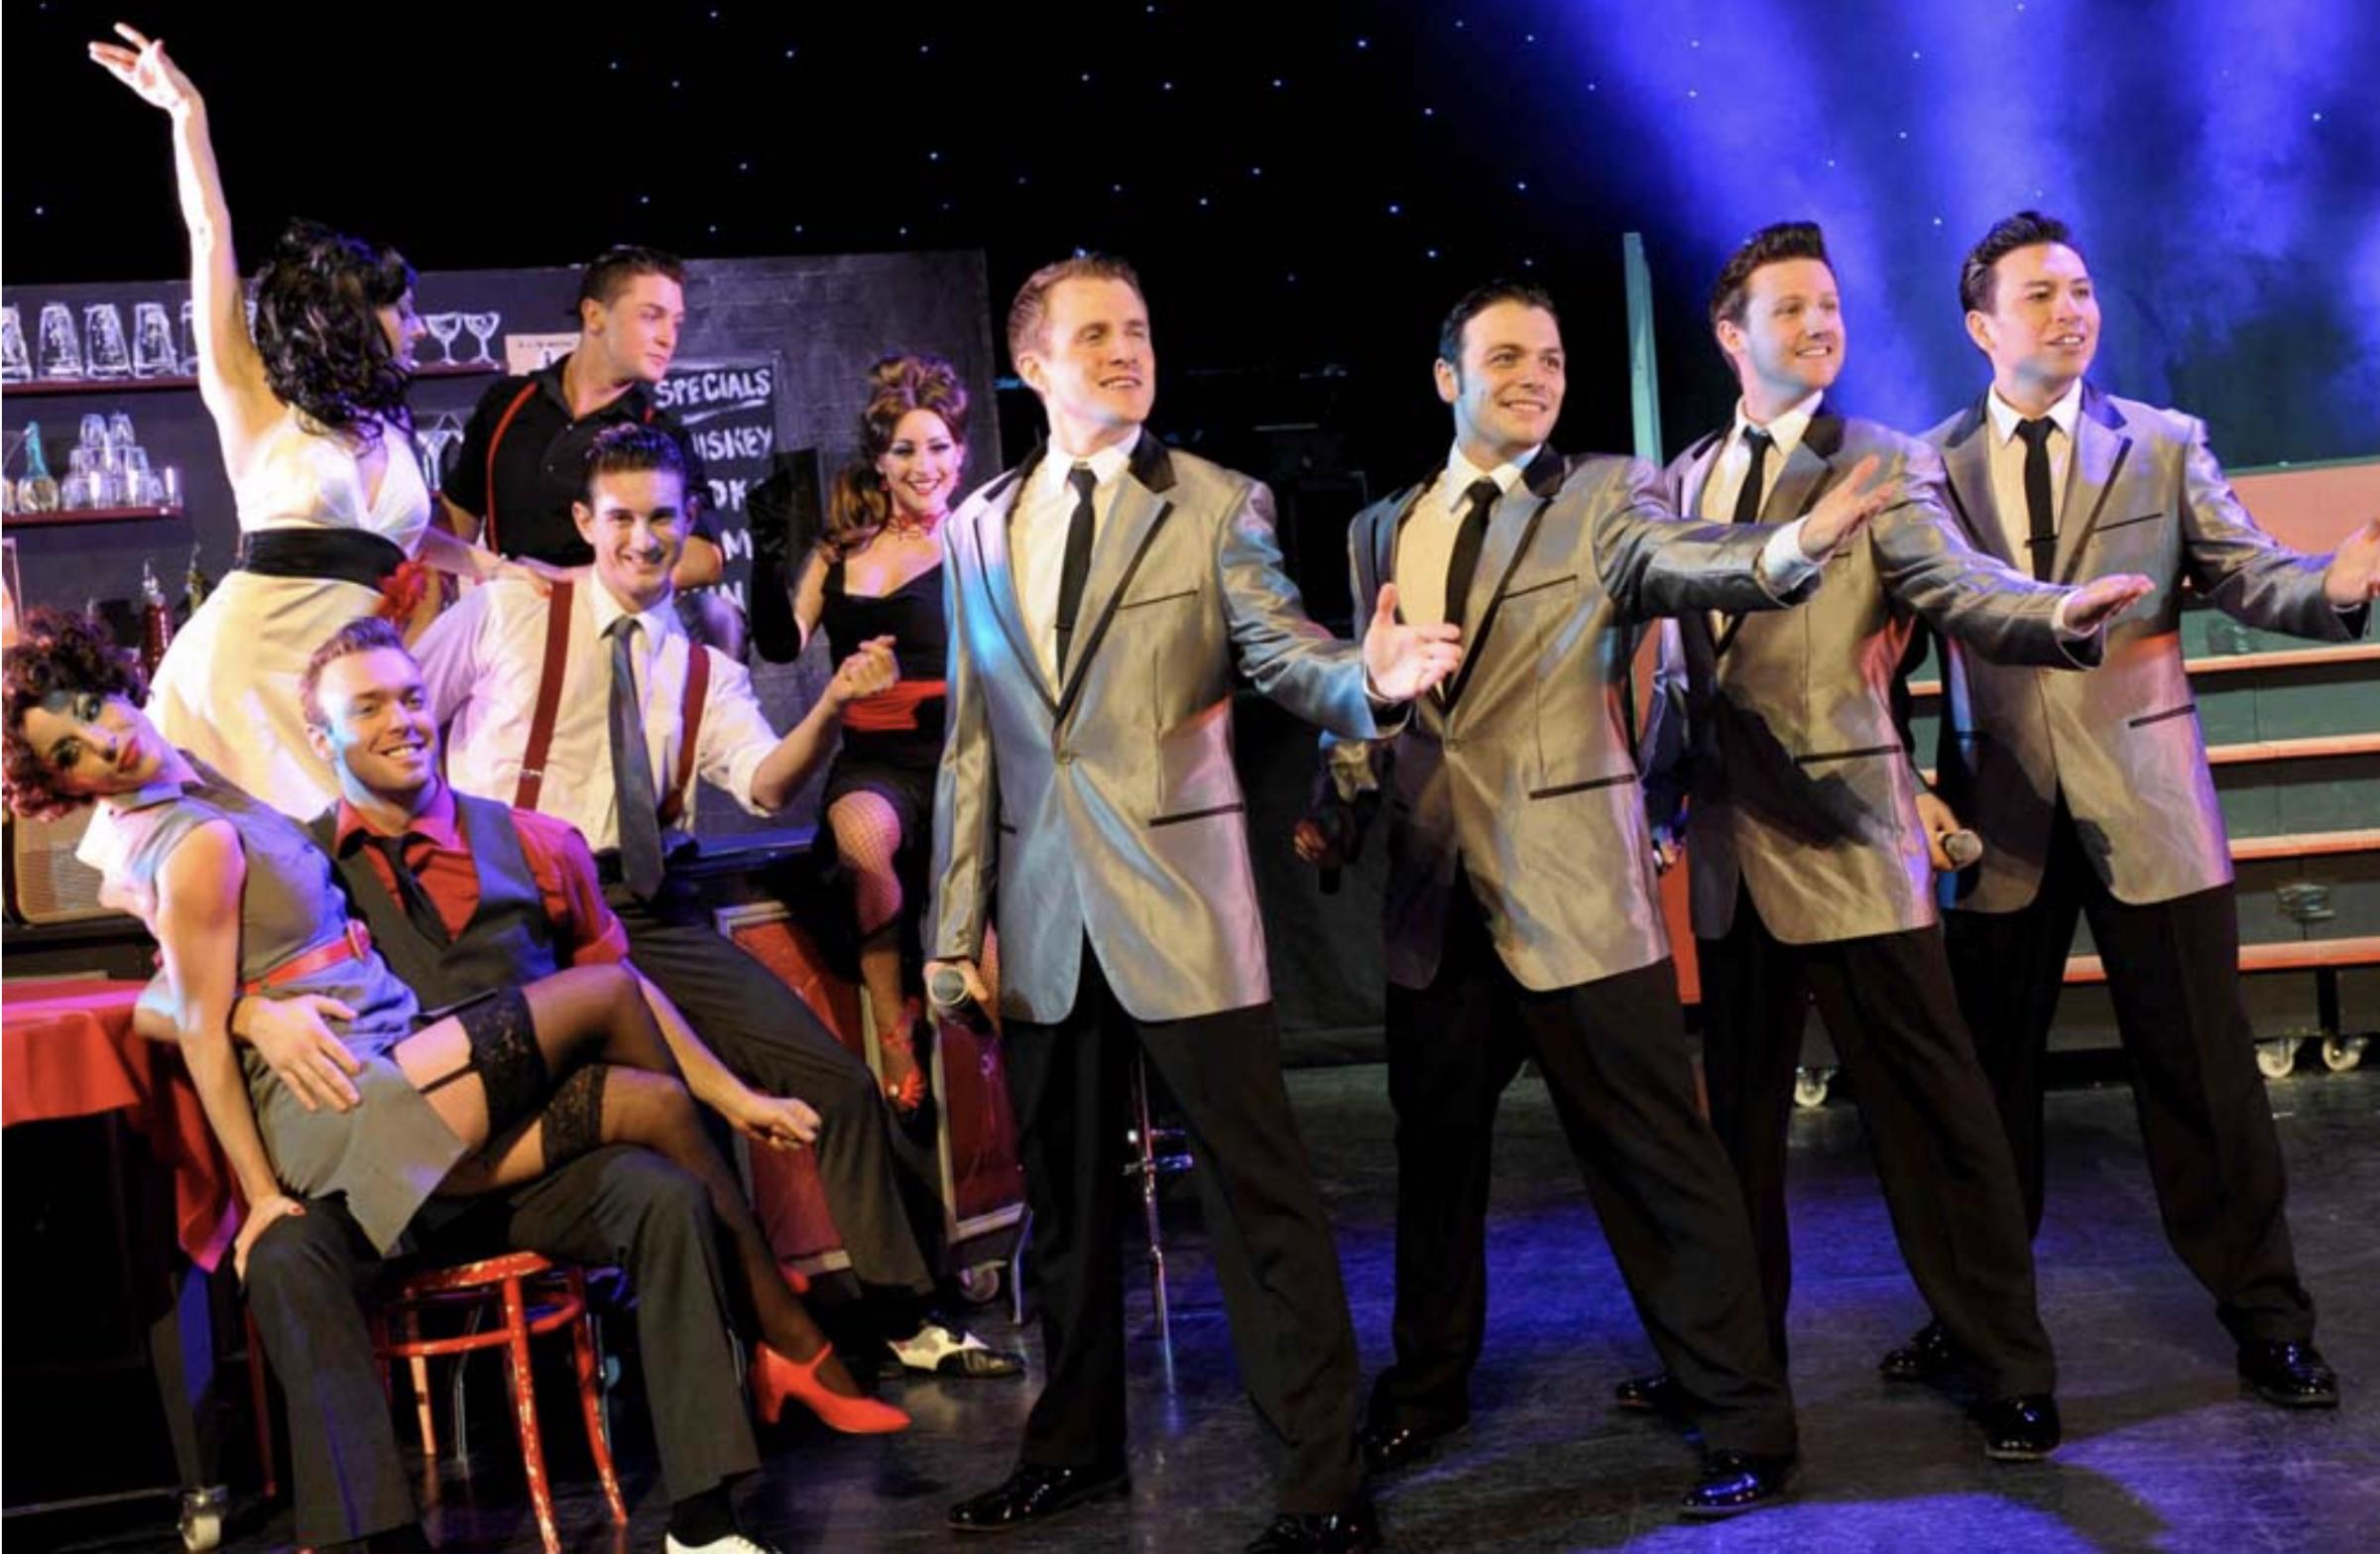 REVIEW: New Jersey Night, Bournemouth Pavilion Theatre